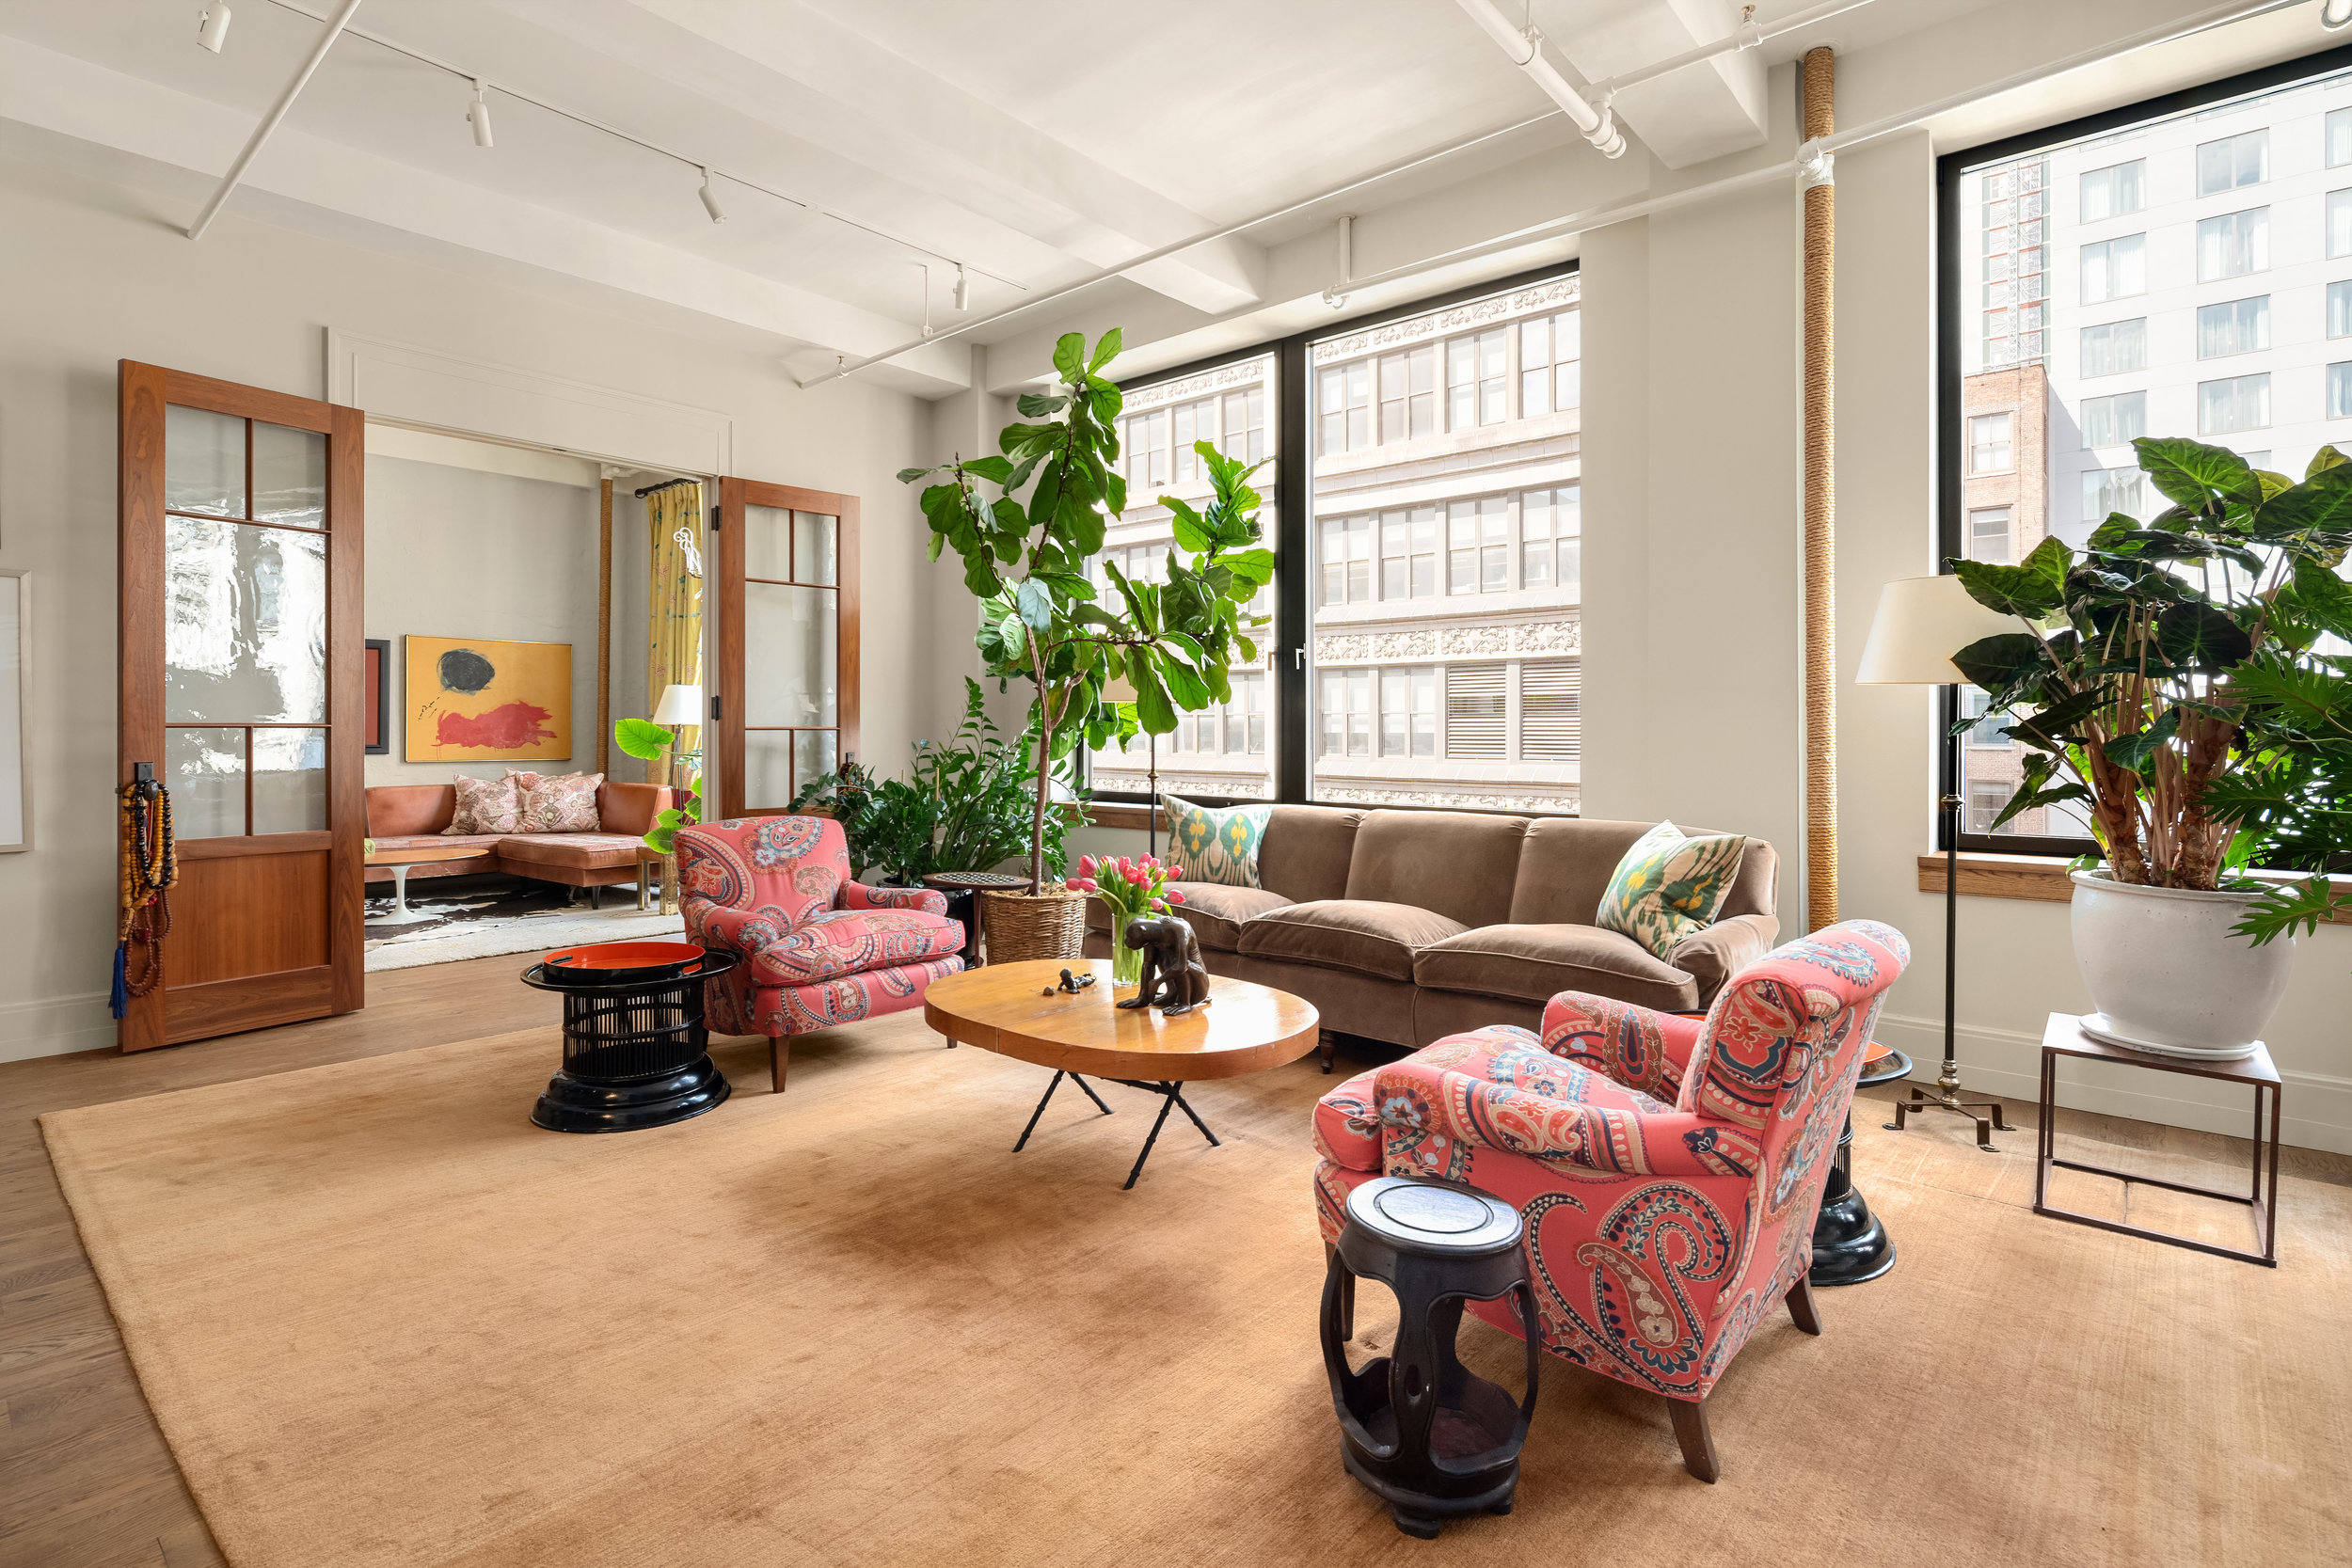 142West26thStreet9-ChelseaNewYork_Holly_Parker_DouglasElliman_Photography_79379195_high_res.jpg